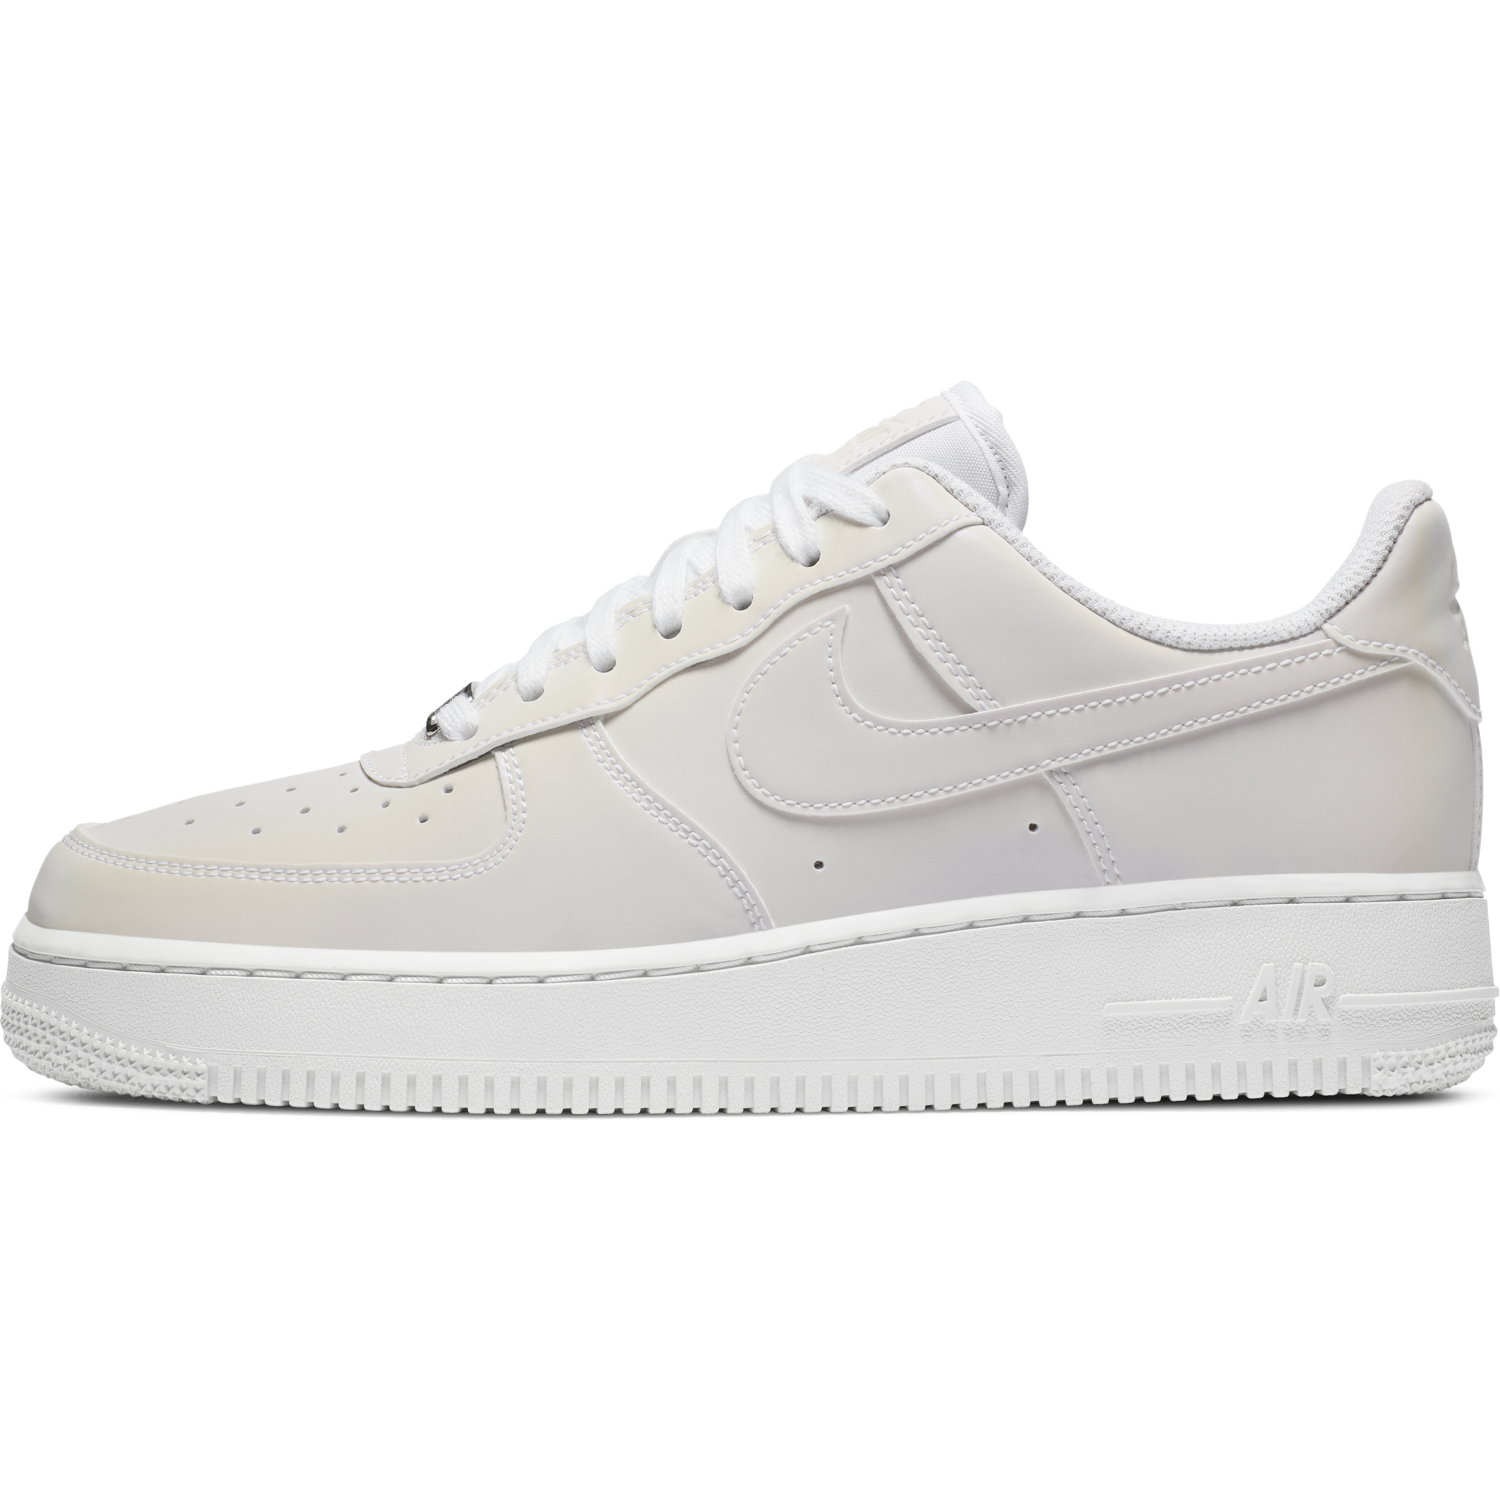 NIKE W'S FOOTWEAR W AIR FORCE 1 '07 - WHITE/WHITE-BEYOND PINK